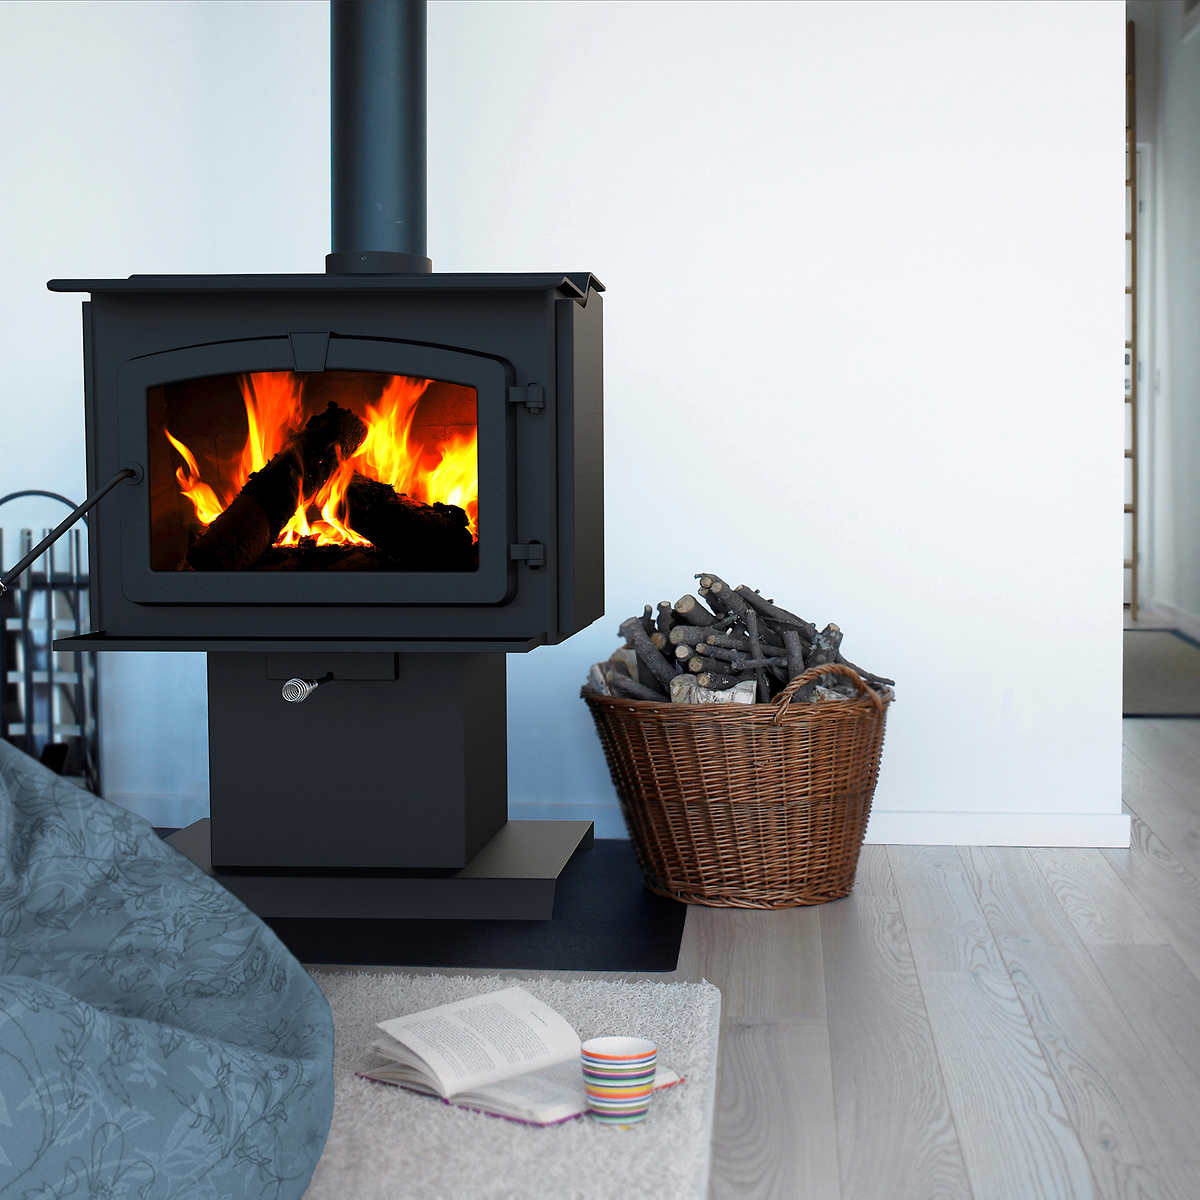 ht2000 extra large epa certified wood stove